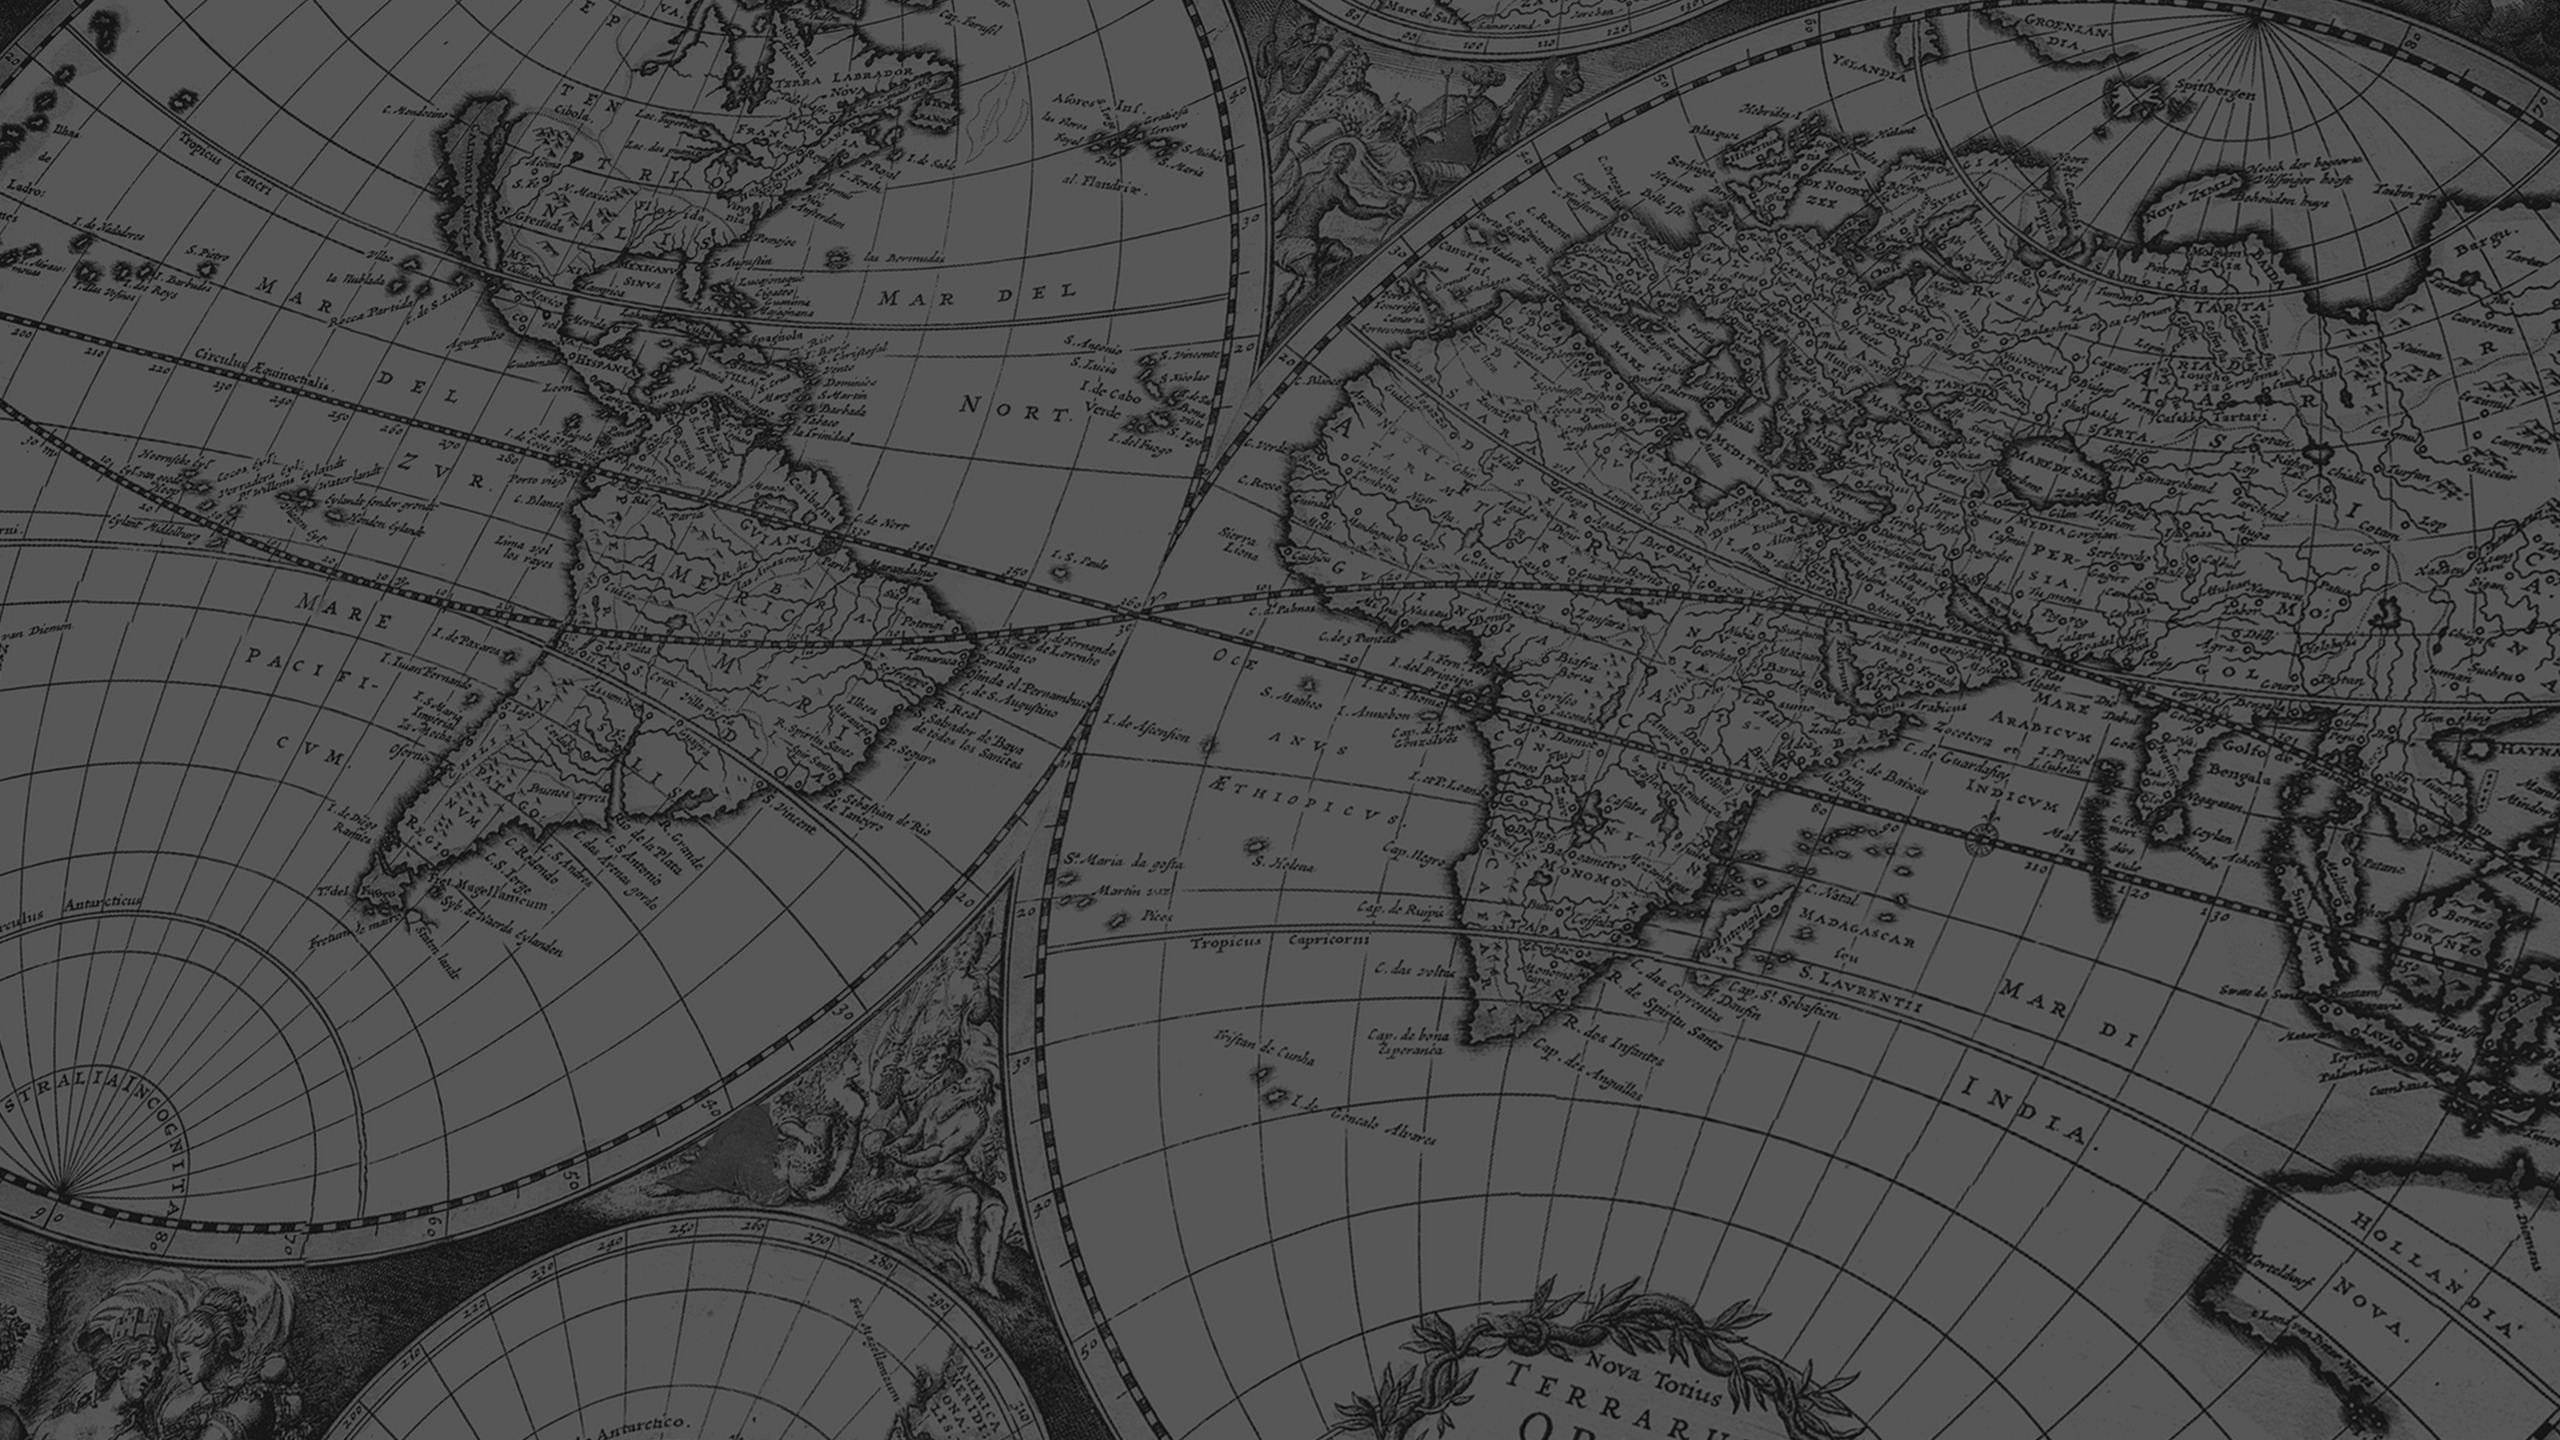 old_earth_map-wallpaper-2560x1440-perspective2-grey.jpg